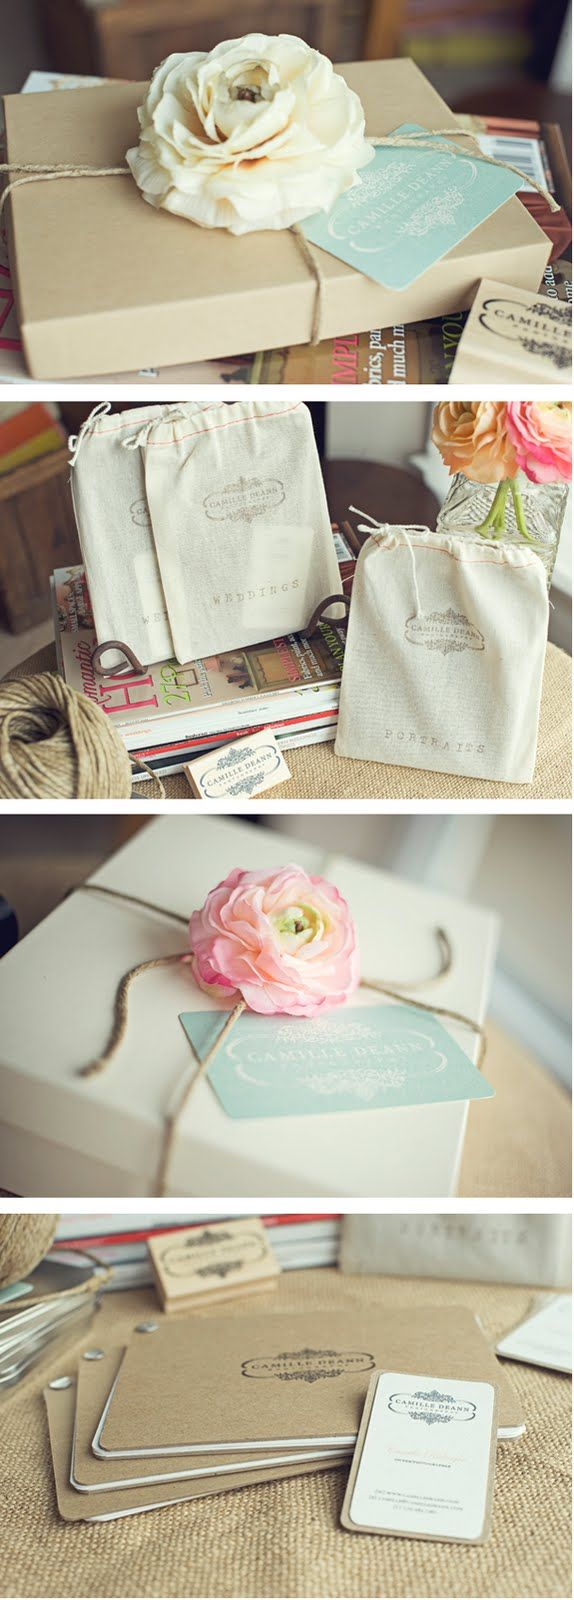 twine and flowers from the garden, who wouldn't want this pretty package?